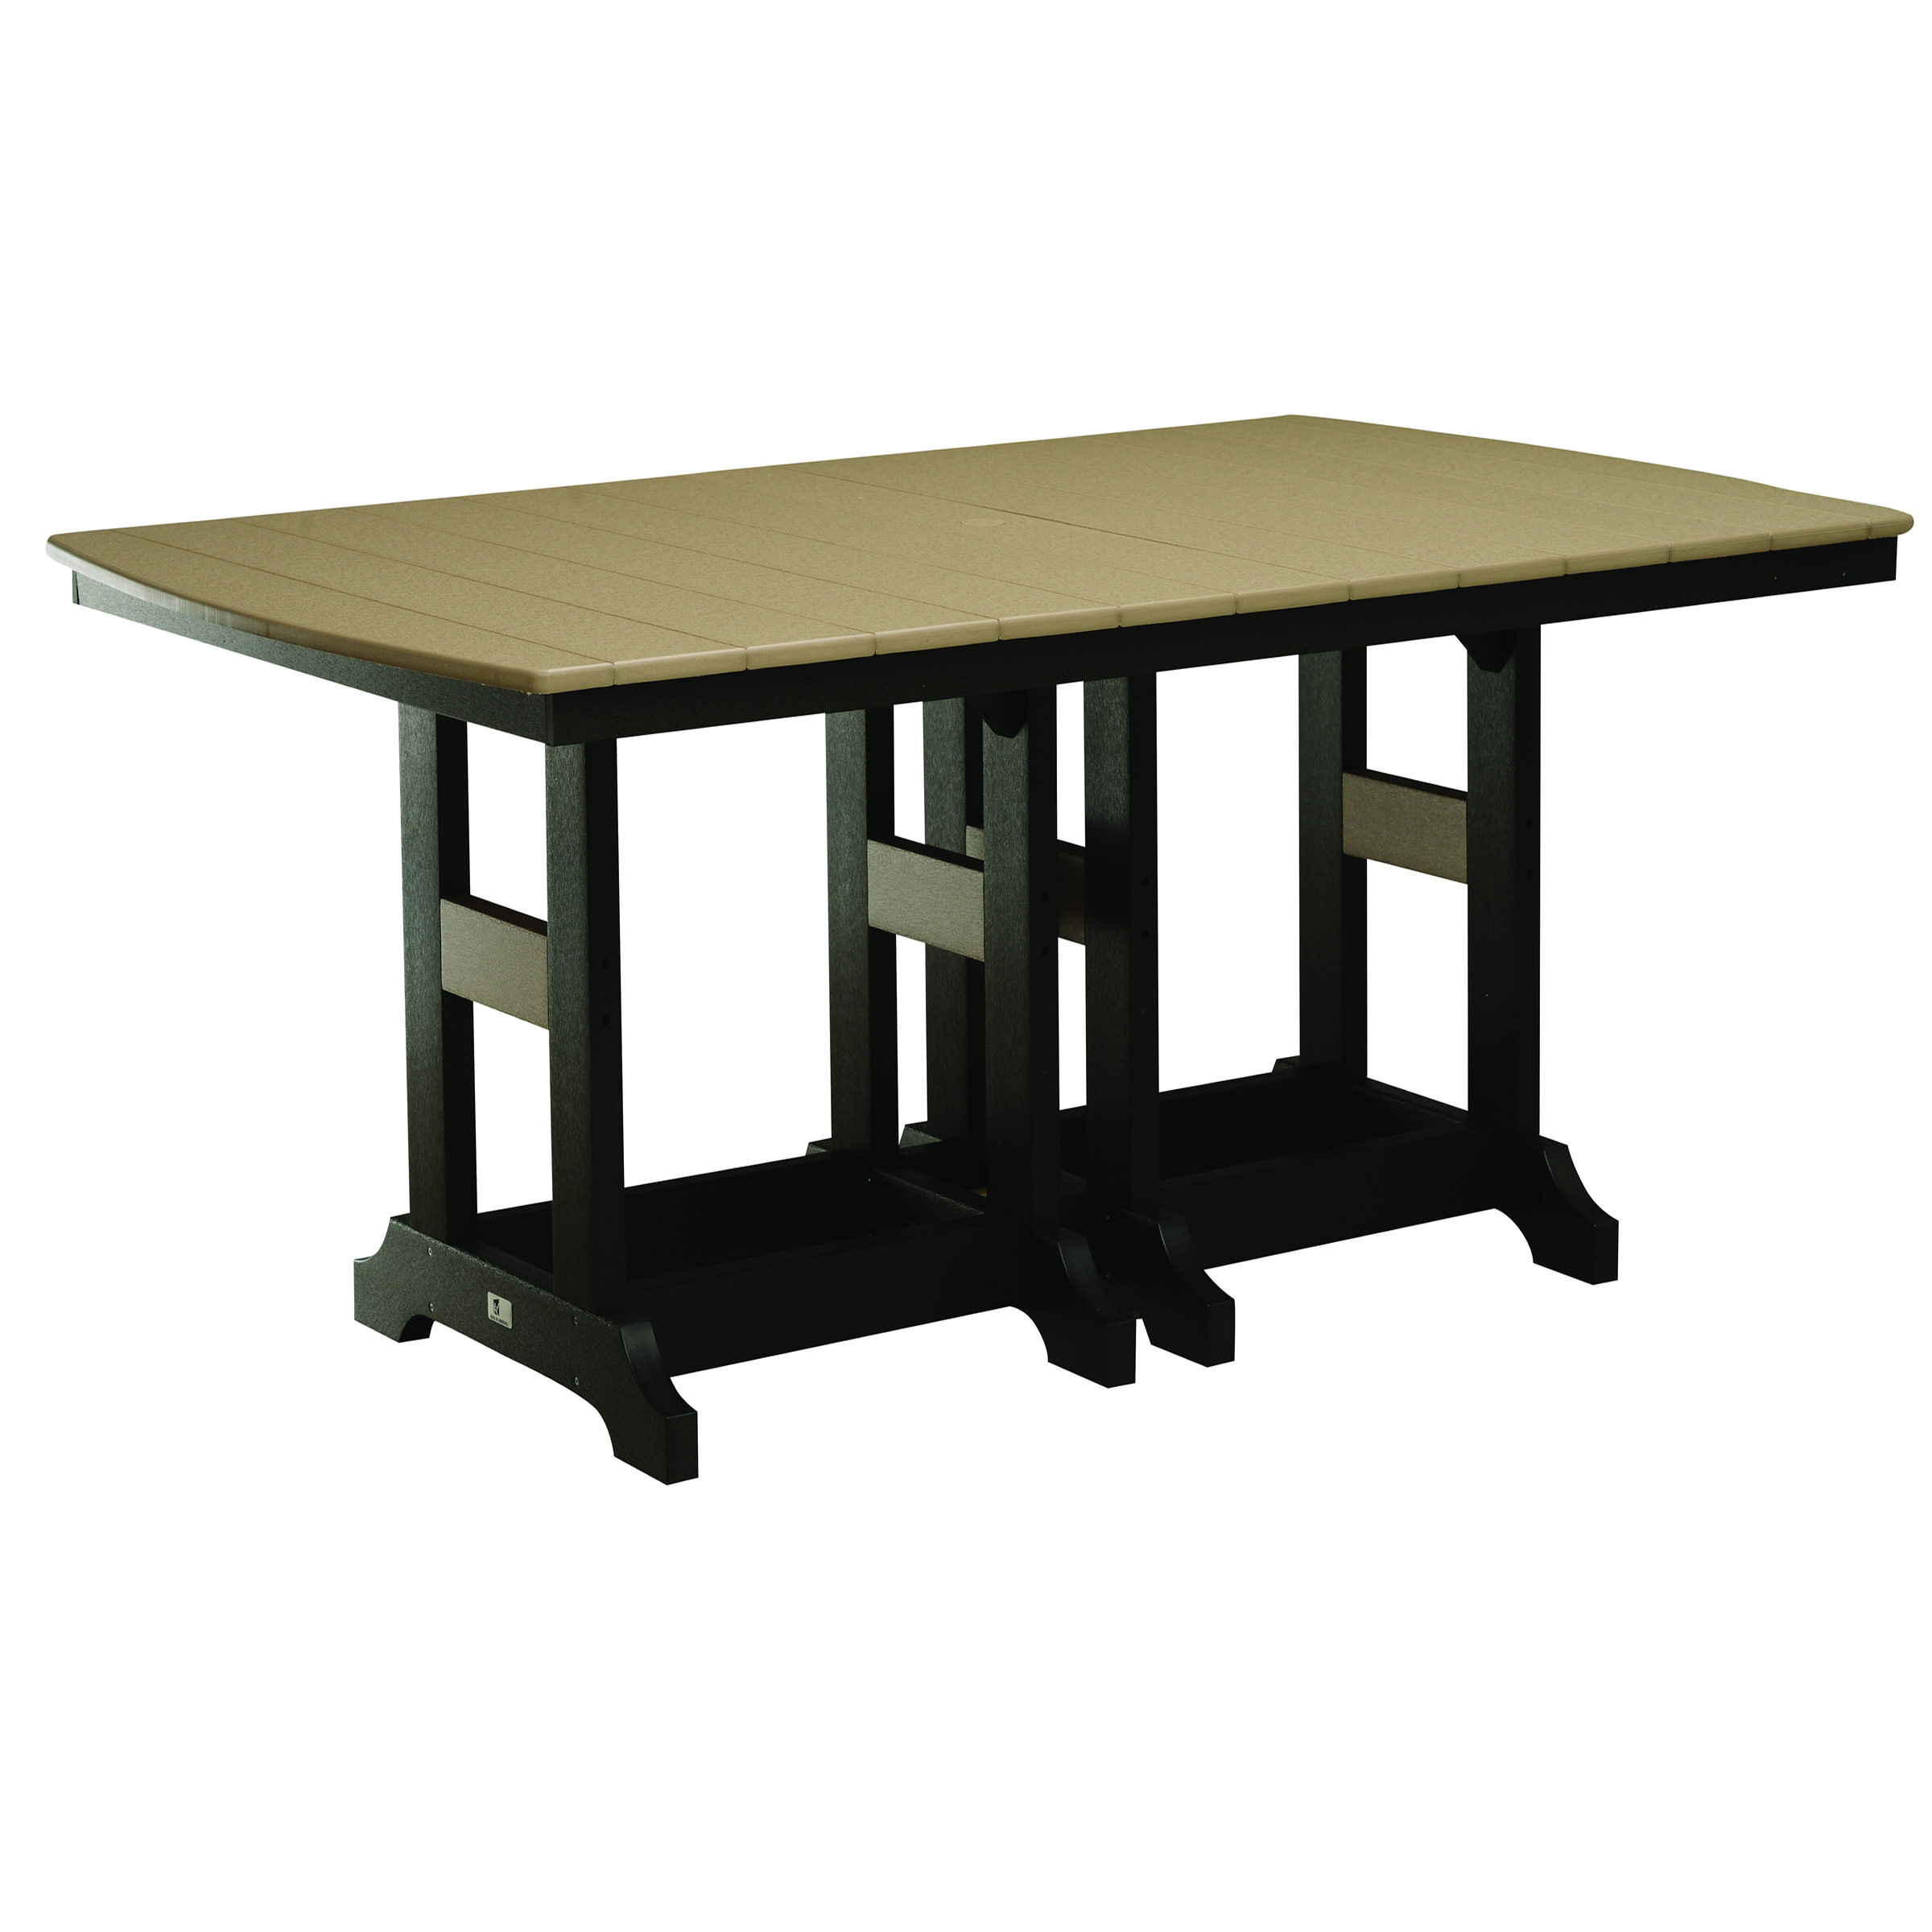 Berlin Gardens Rectangular 44 x 72 in Counter Table